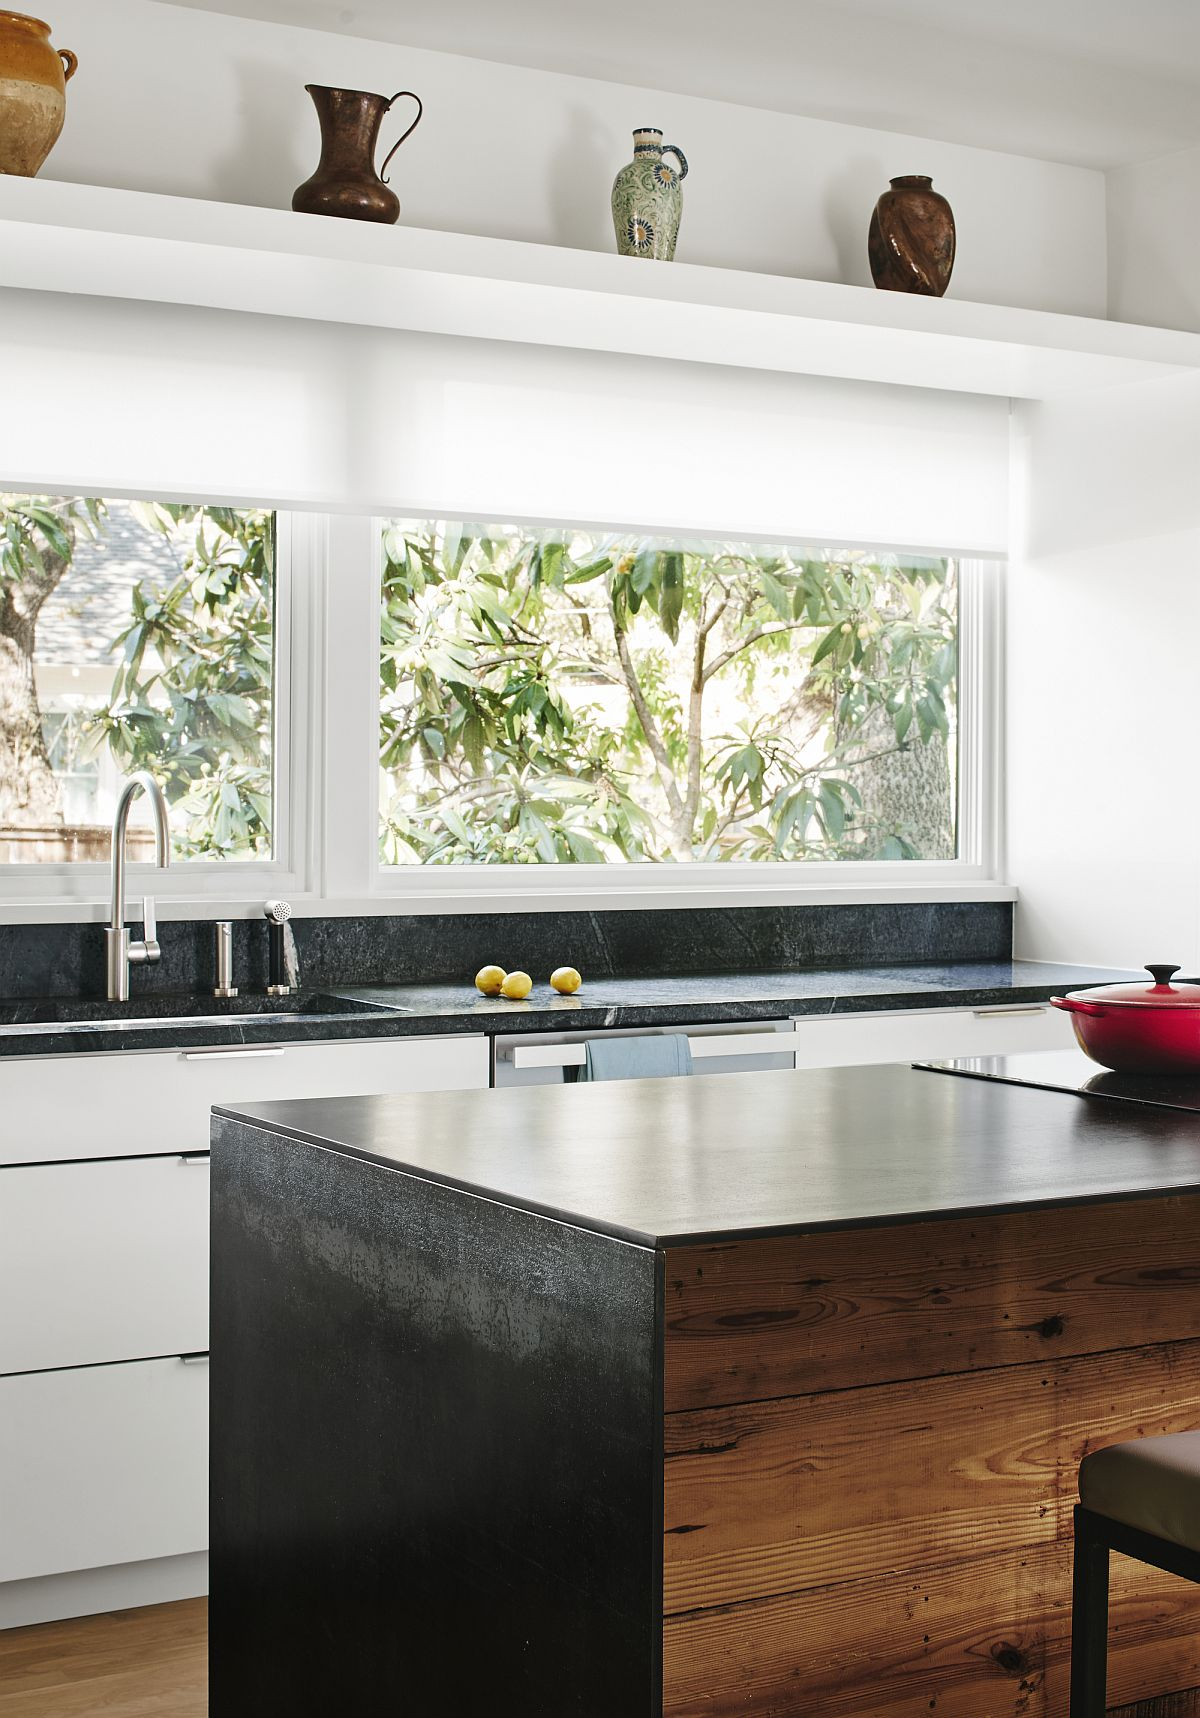 Large window connects the kitchen with the green yard outside